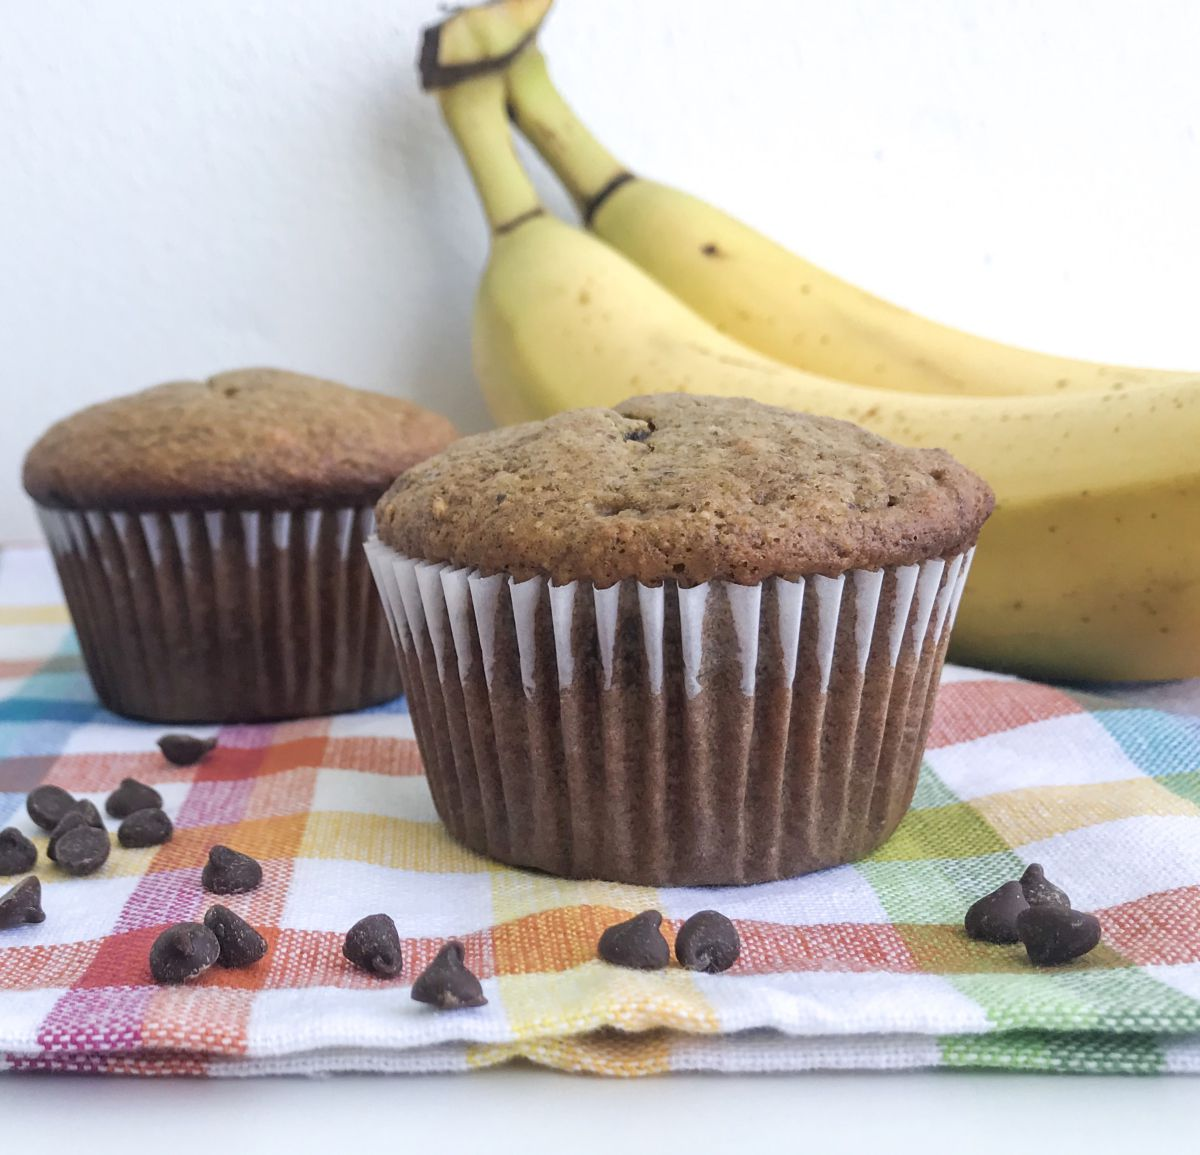 Two Make Ahead Breakfast Ideas for Busy Mornings Miami Moms Blog